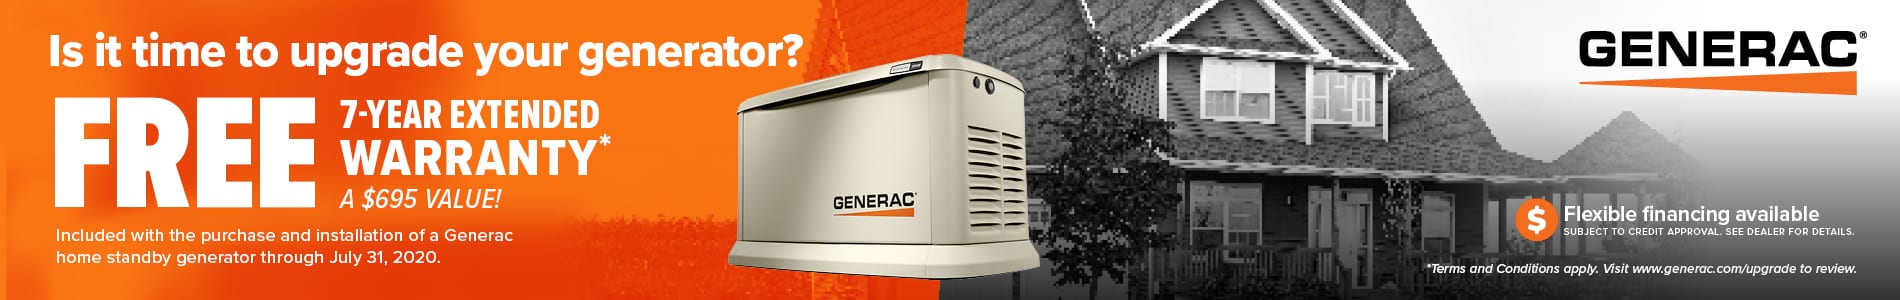 Replace Your Generator and Get a FREE 7 Year Extended Warranty!